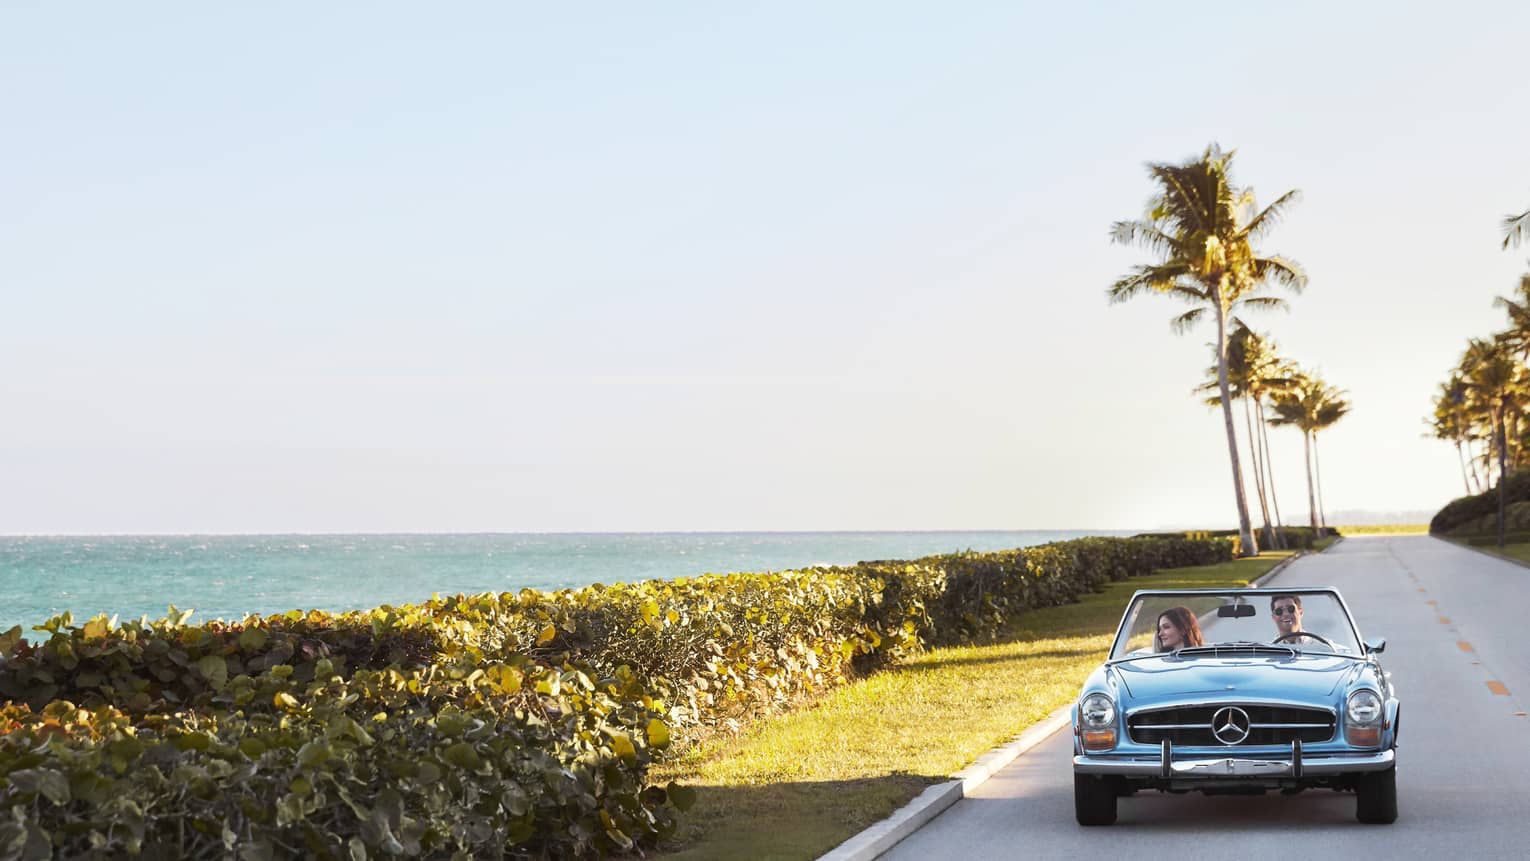 A couple drives along the shore in a blue convertible Mercedes-Benz